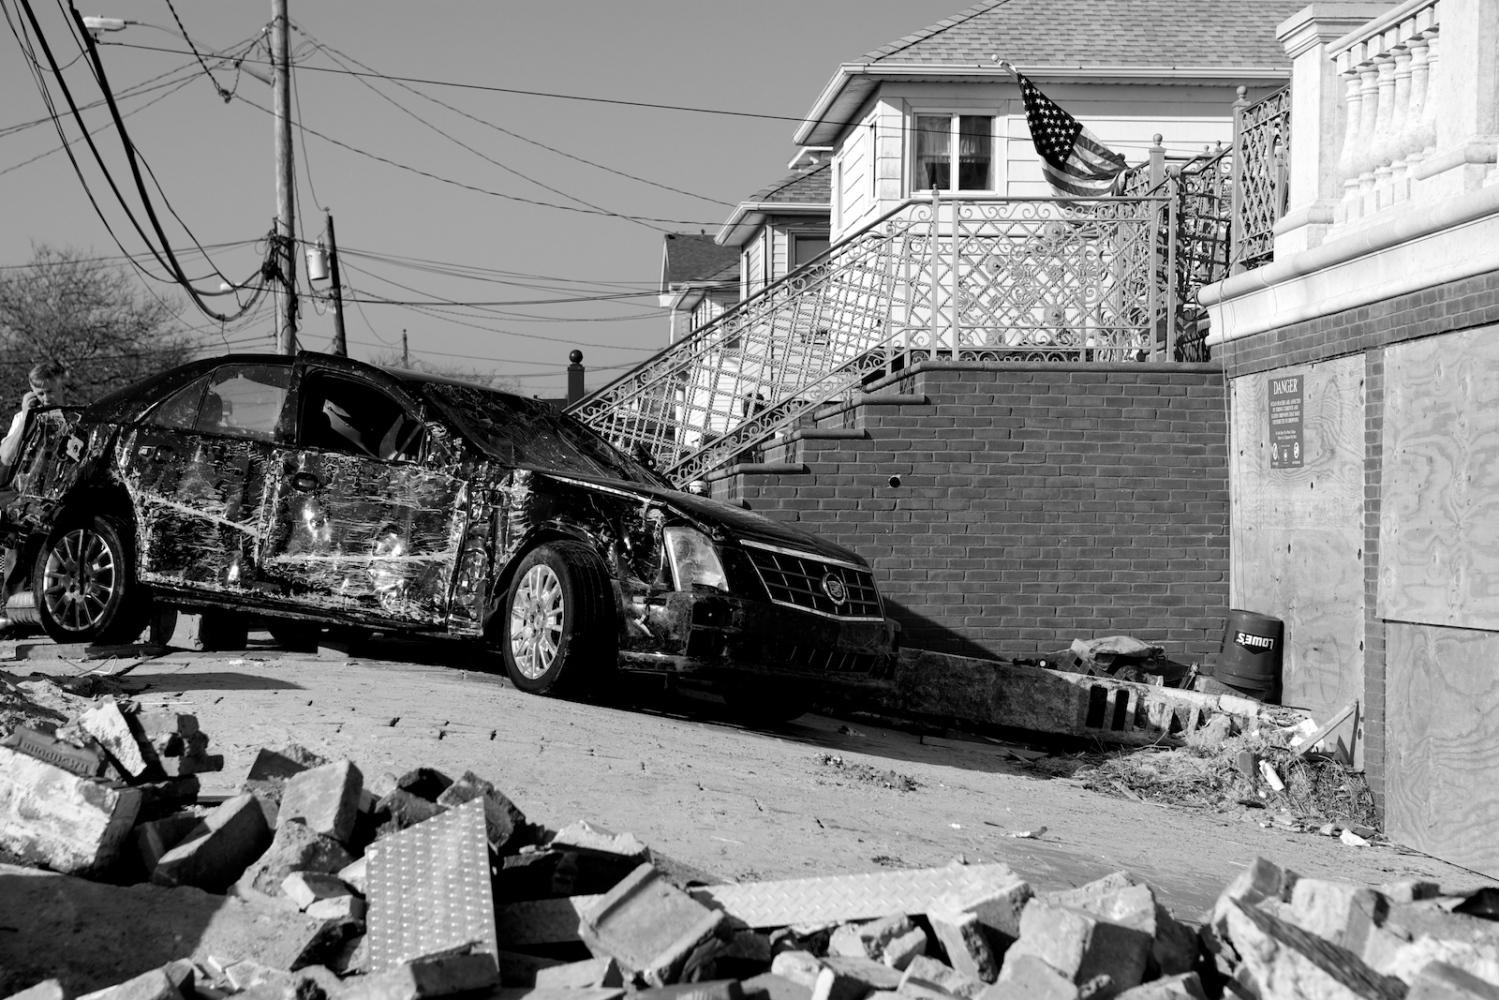 A car destroyed by Hurricane Sandy sits in front of a home in Breezy Point, Queens, N.Y. on Nov. 11, 2012.